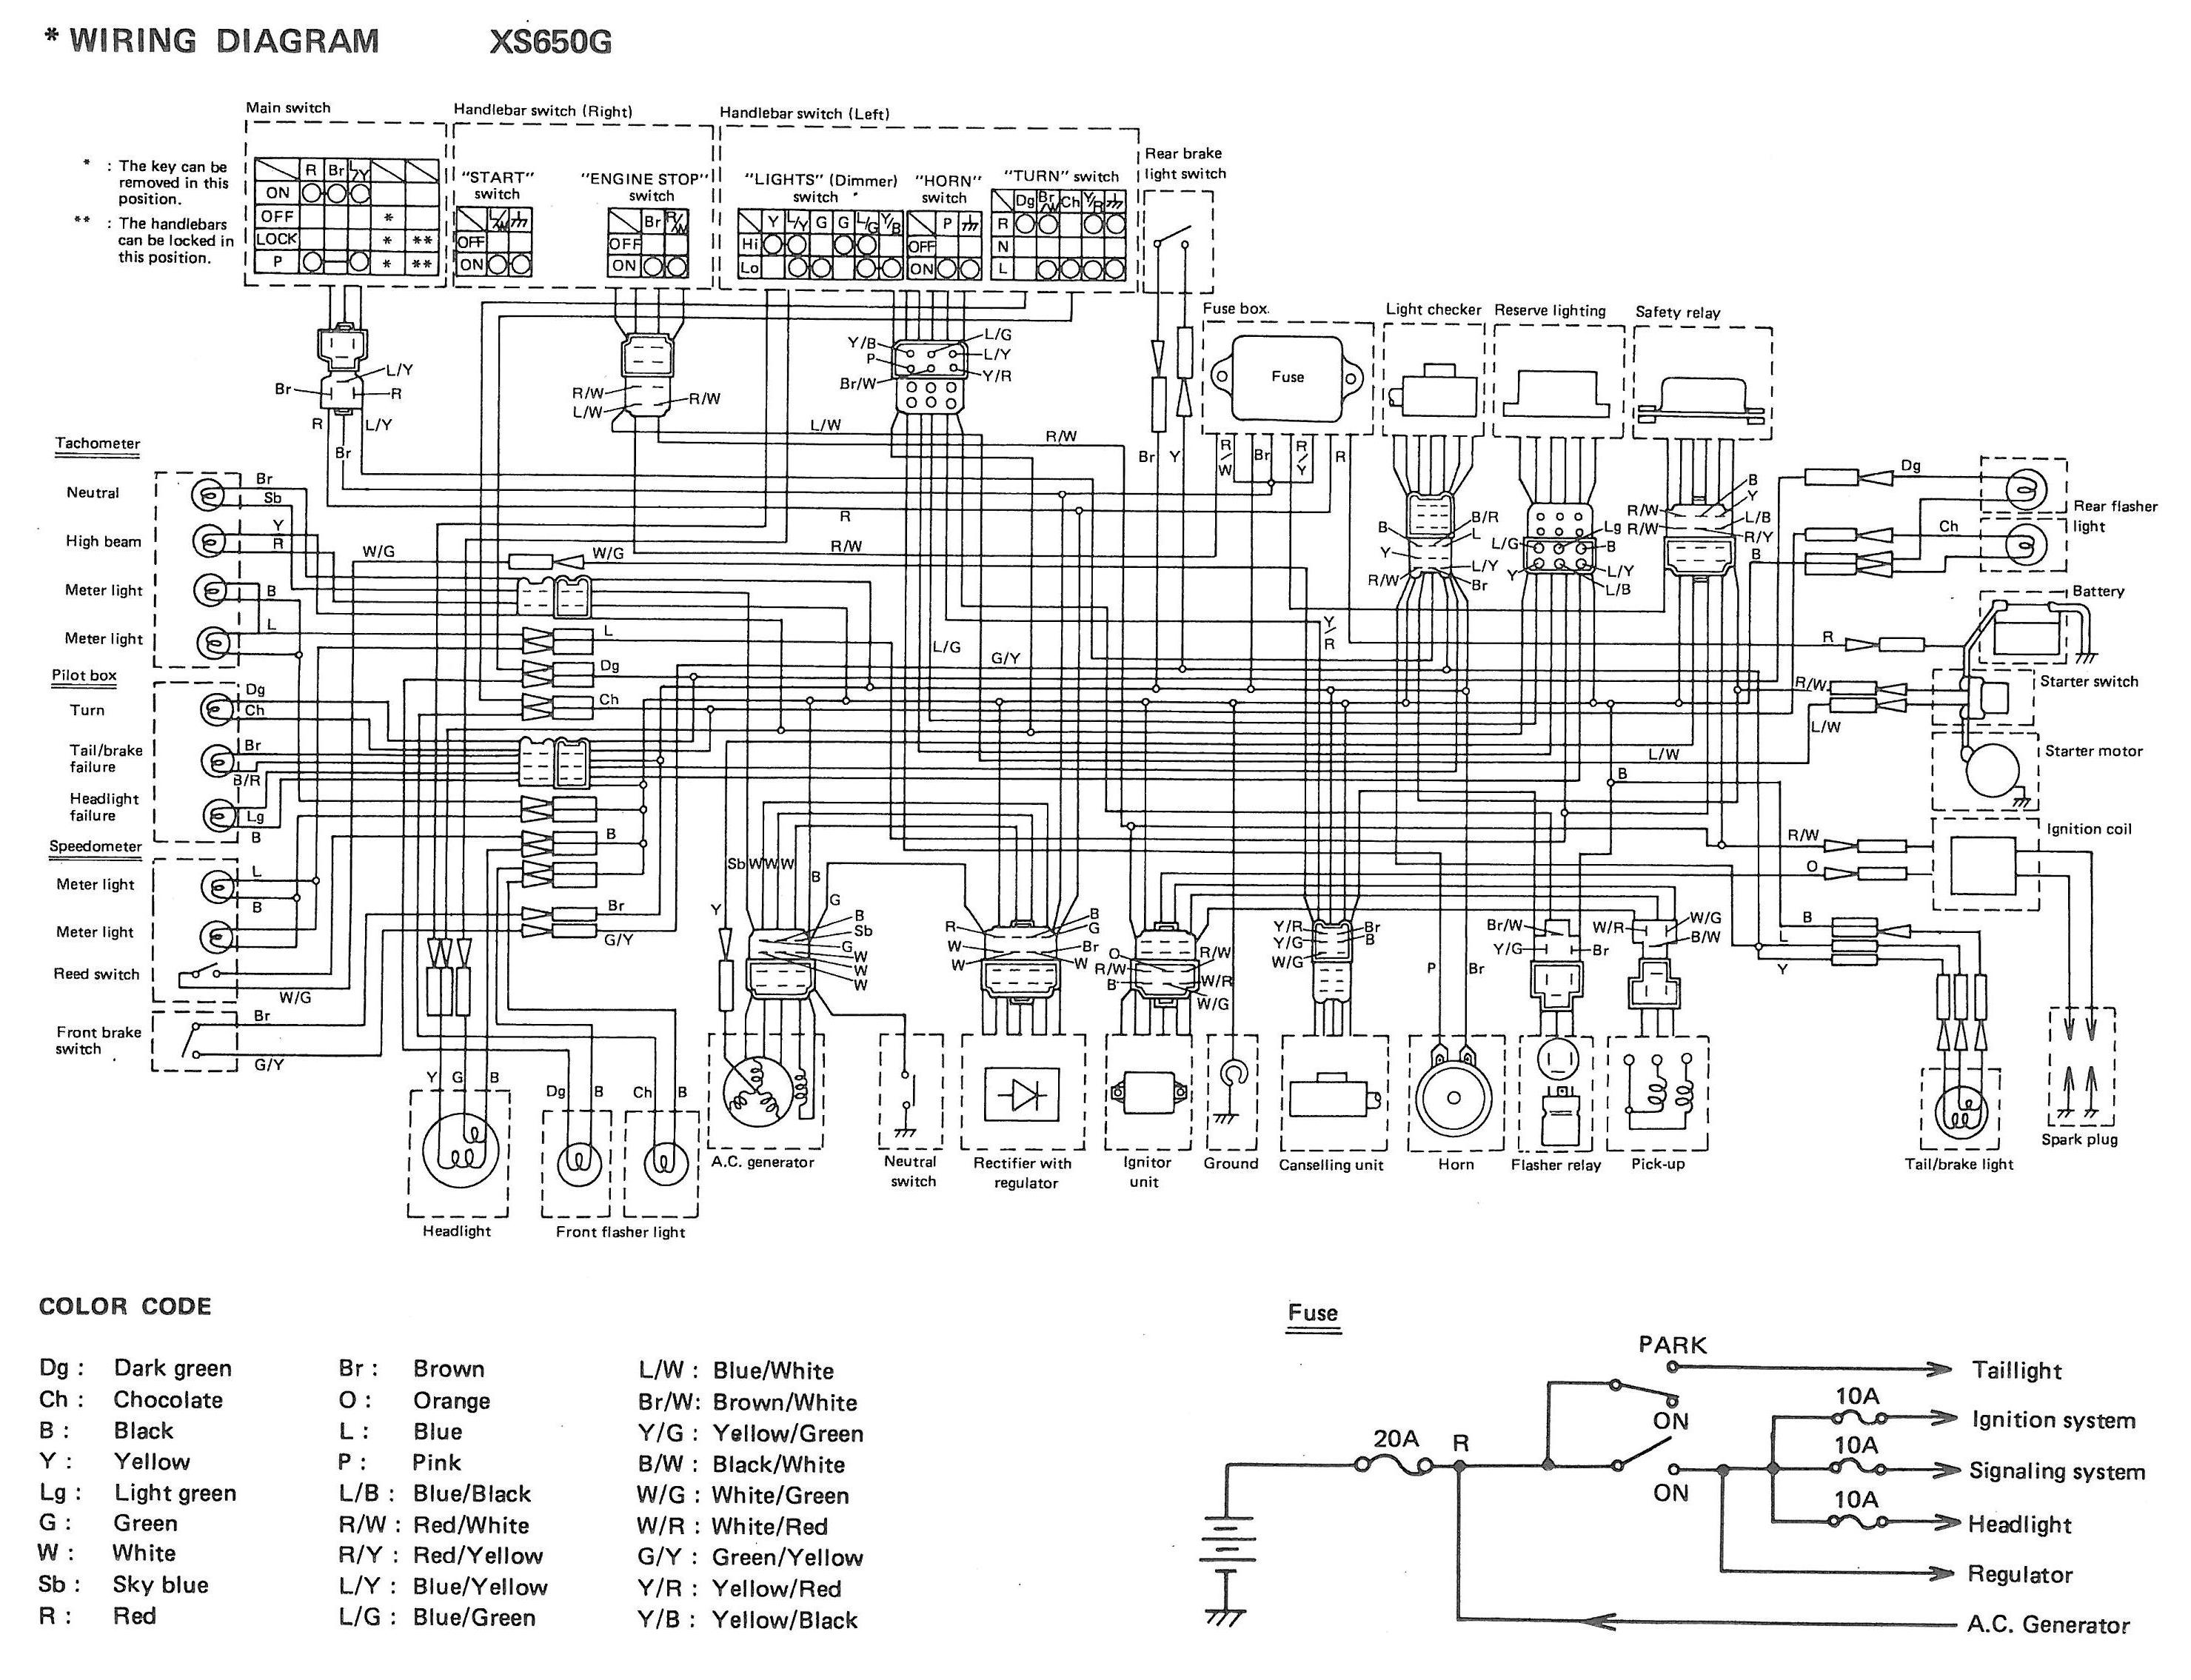 WRG-9599] 1980 Yamaha Qt50 Wiring Diagram on